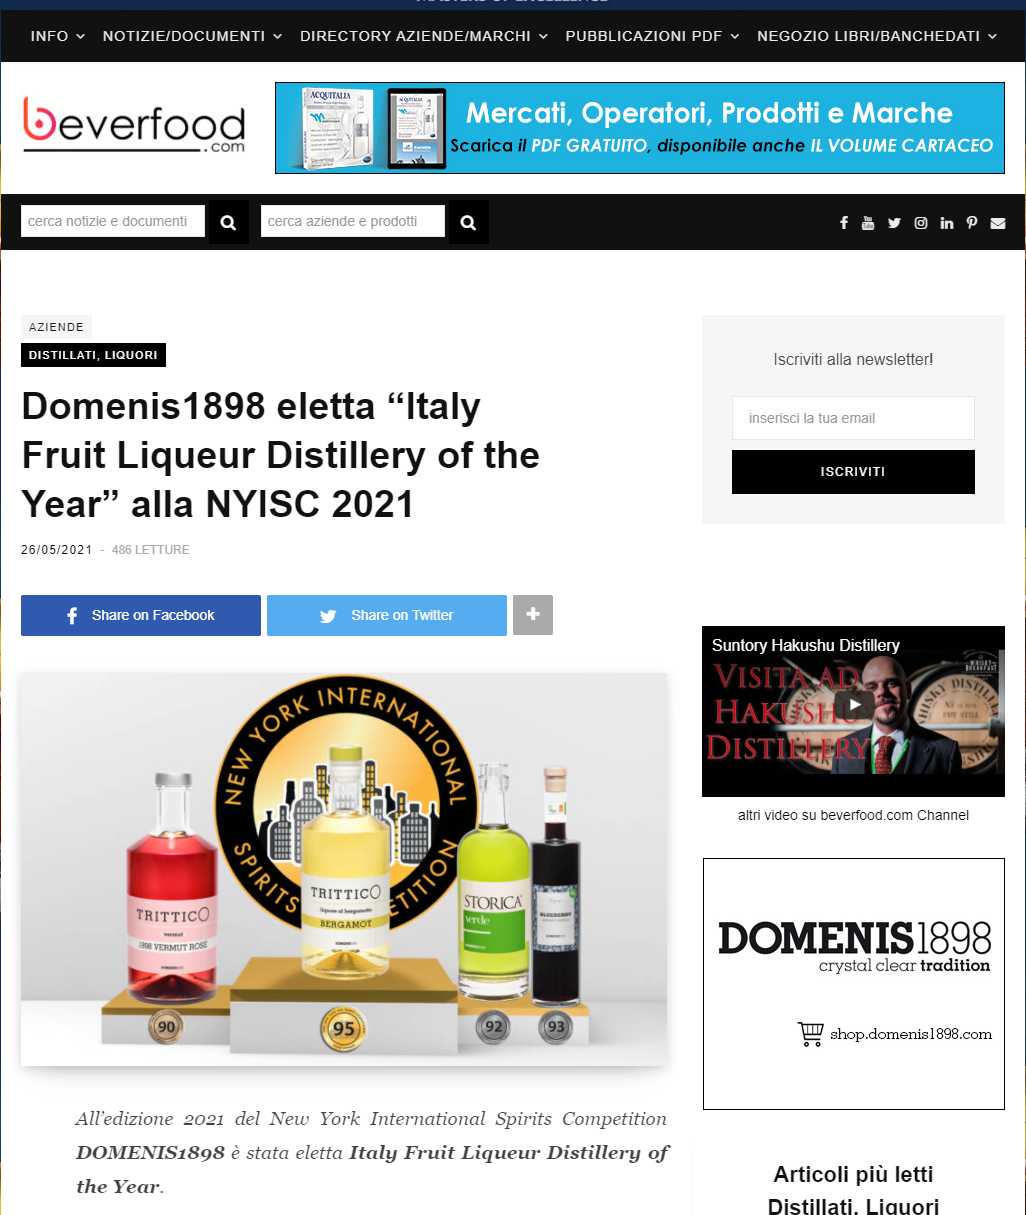 """2021 maggio 26: Beverfood.com – DOMENIS1898 eletta """"Italy Fruit Liqueur Distillery of the Year"""" alla NYISC 2021"""